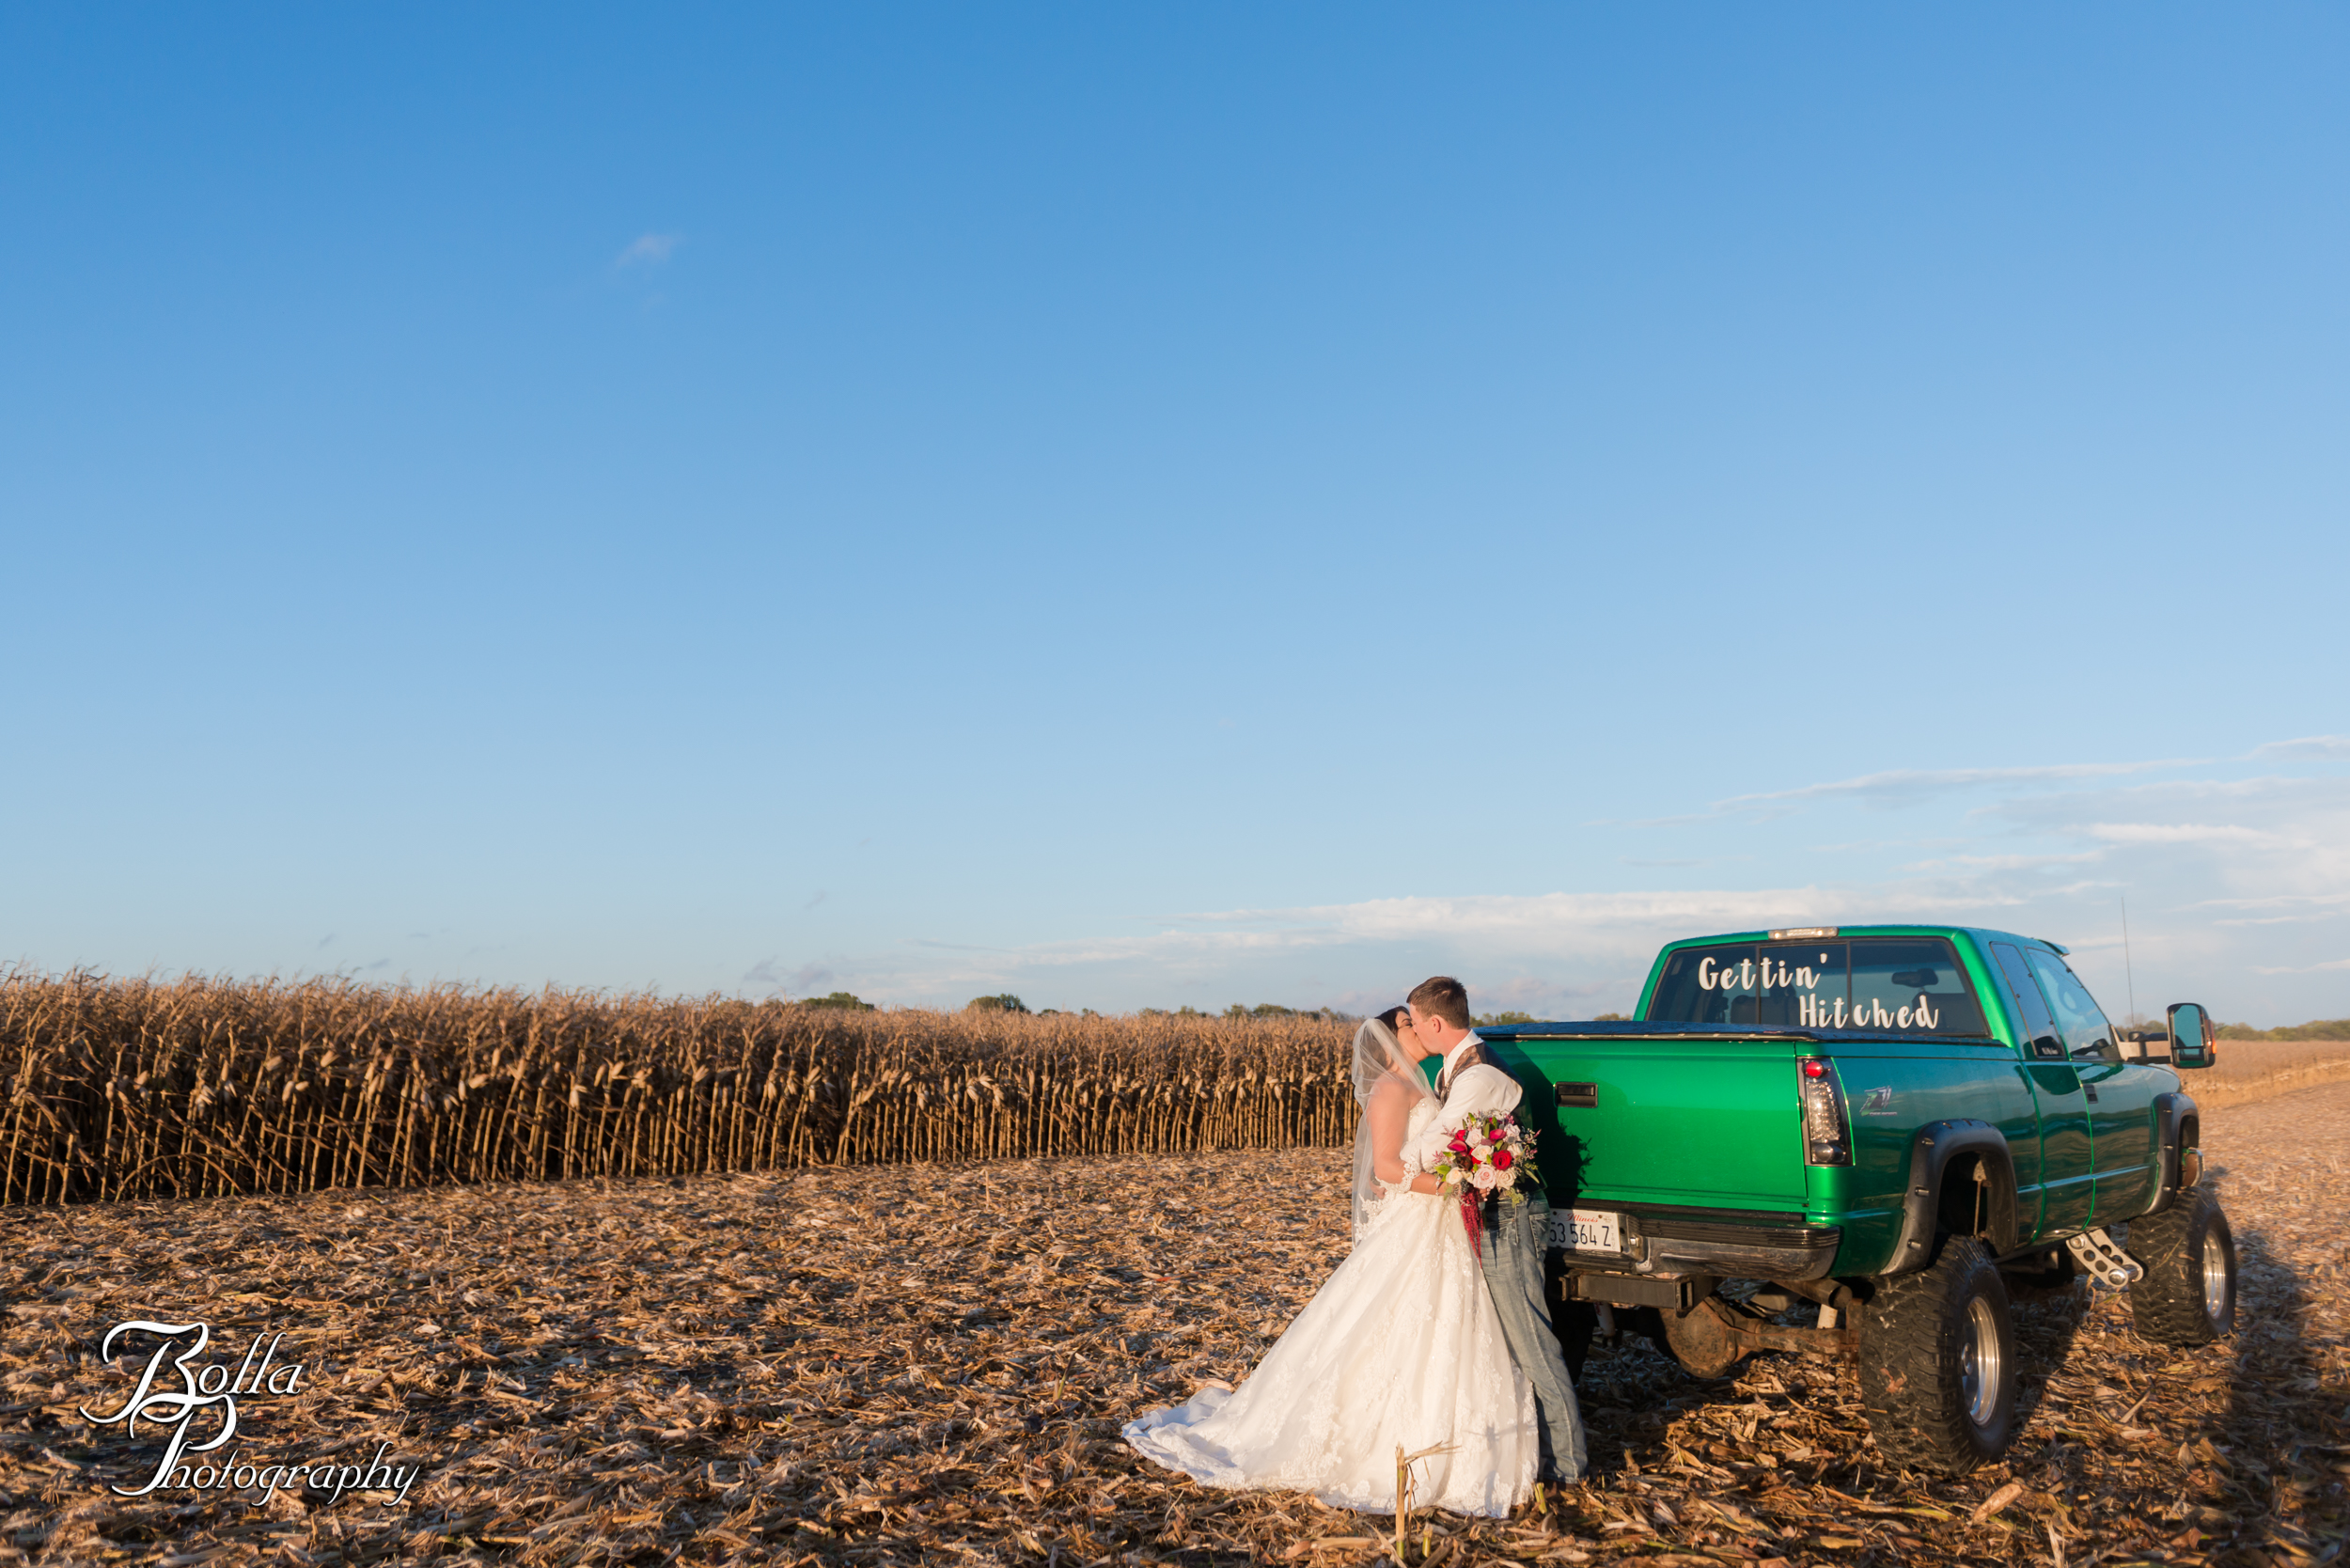 Bolla_photography_edwardsville_wedding_photographer_st_louis_weddings_Amber_Korsmeyer_Kyle_Gruner_Schwarz_Barn_blue_jeans_pickup_truck_autumn-0325.jpg